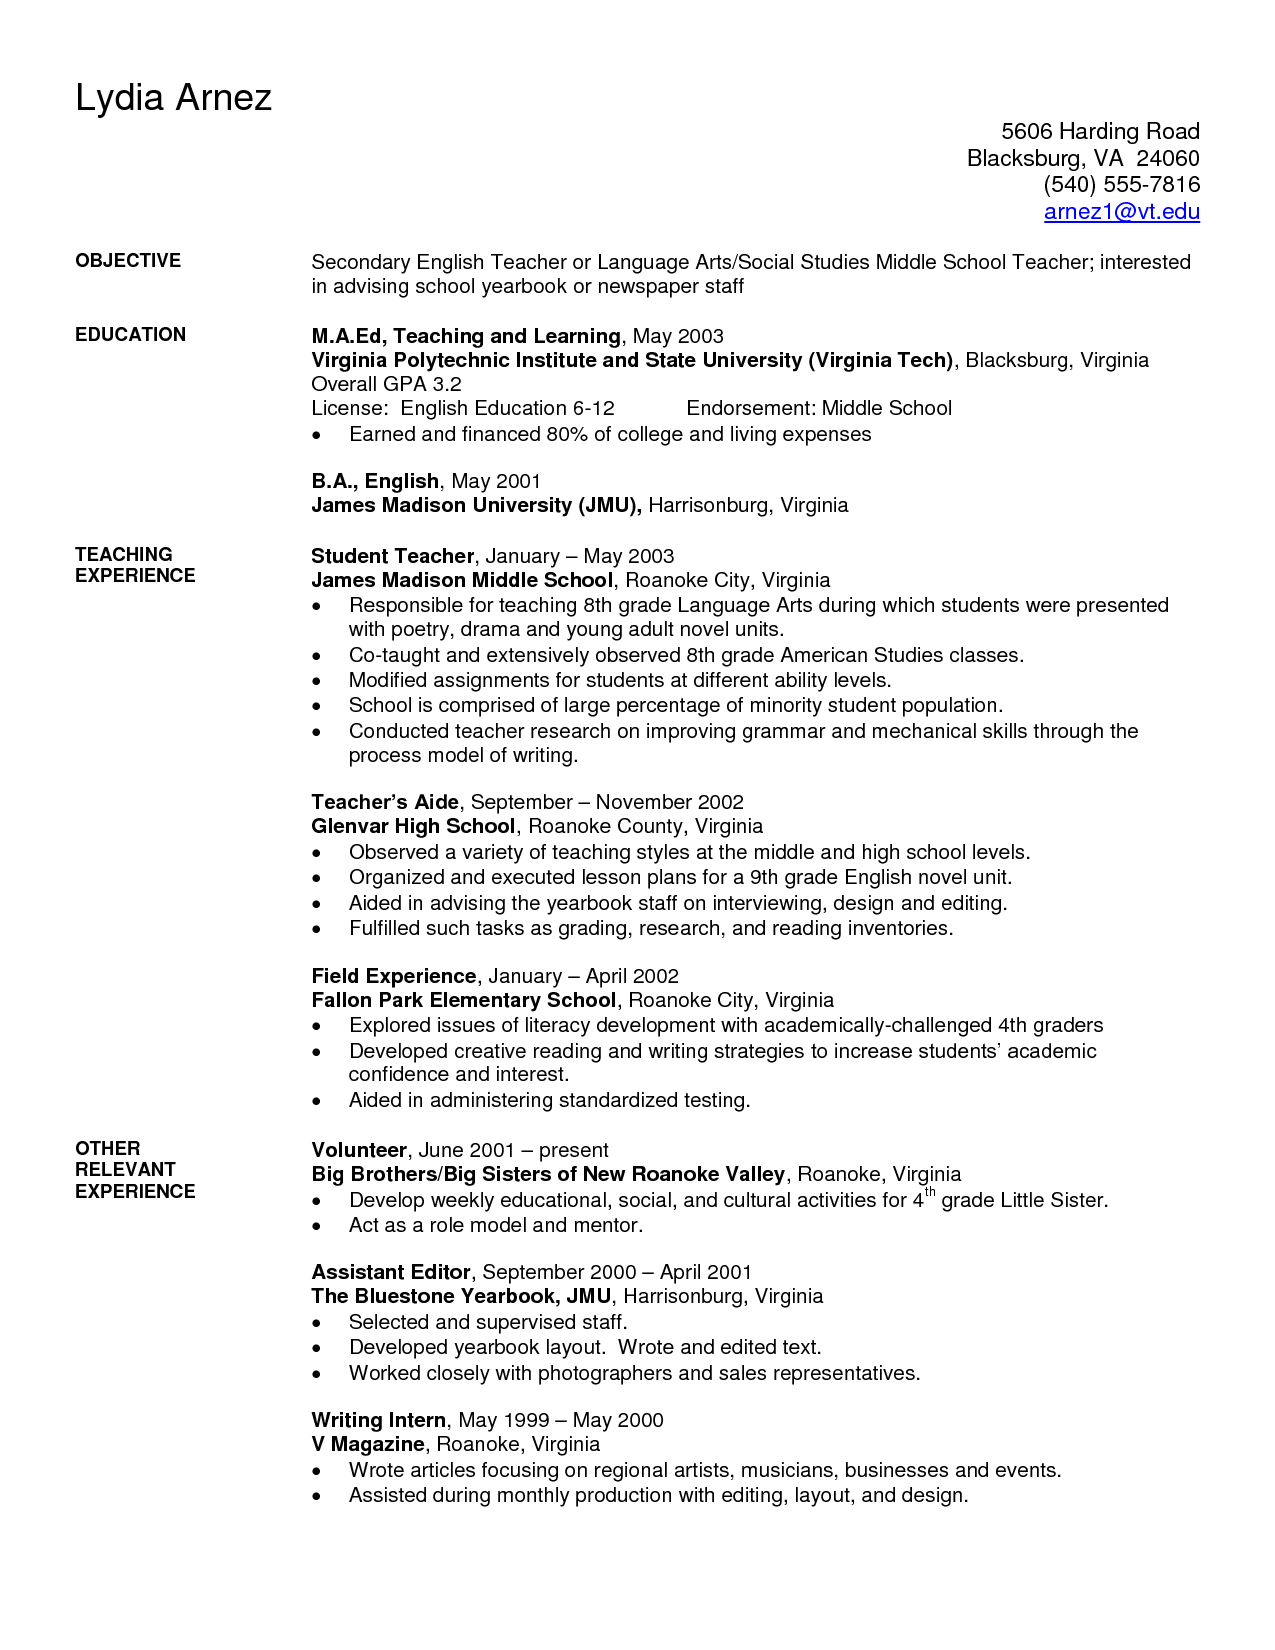 Resume Format For Bed Teachers